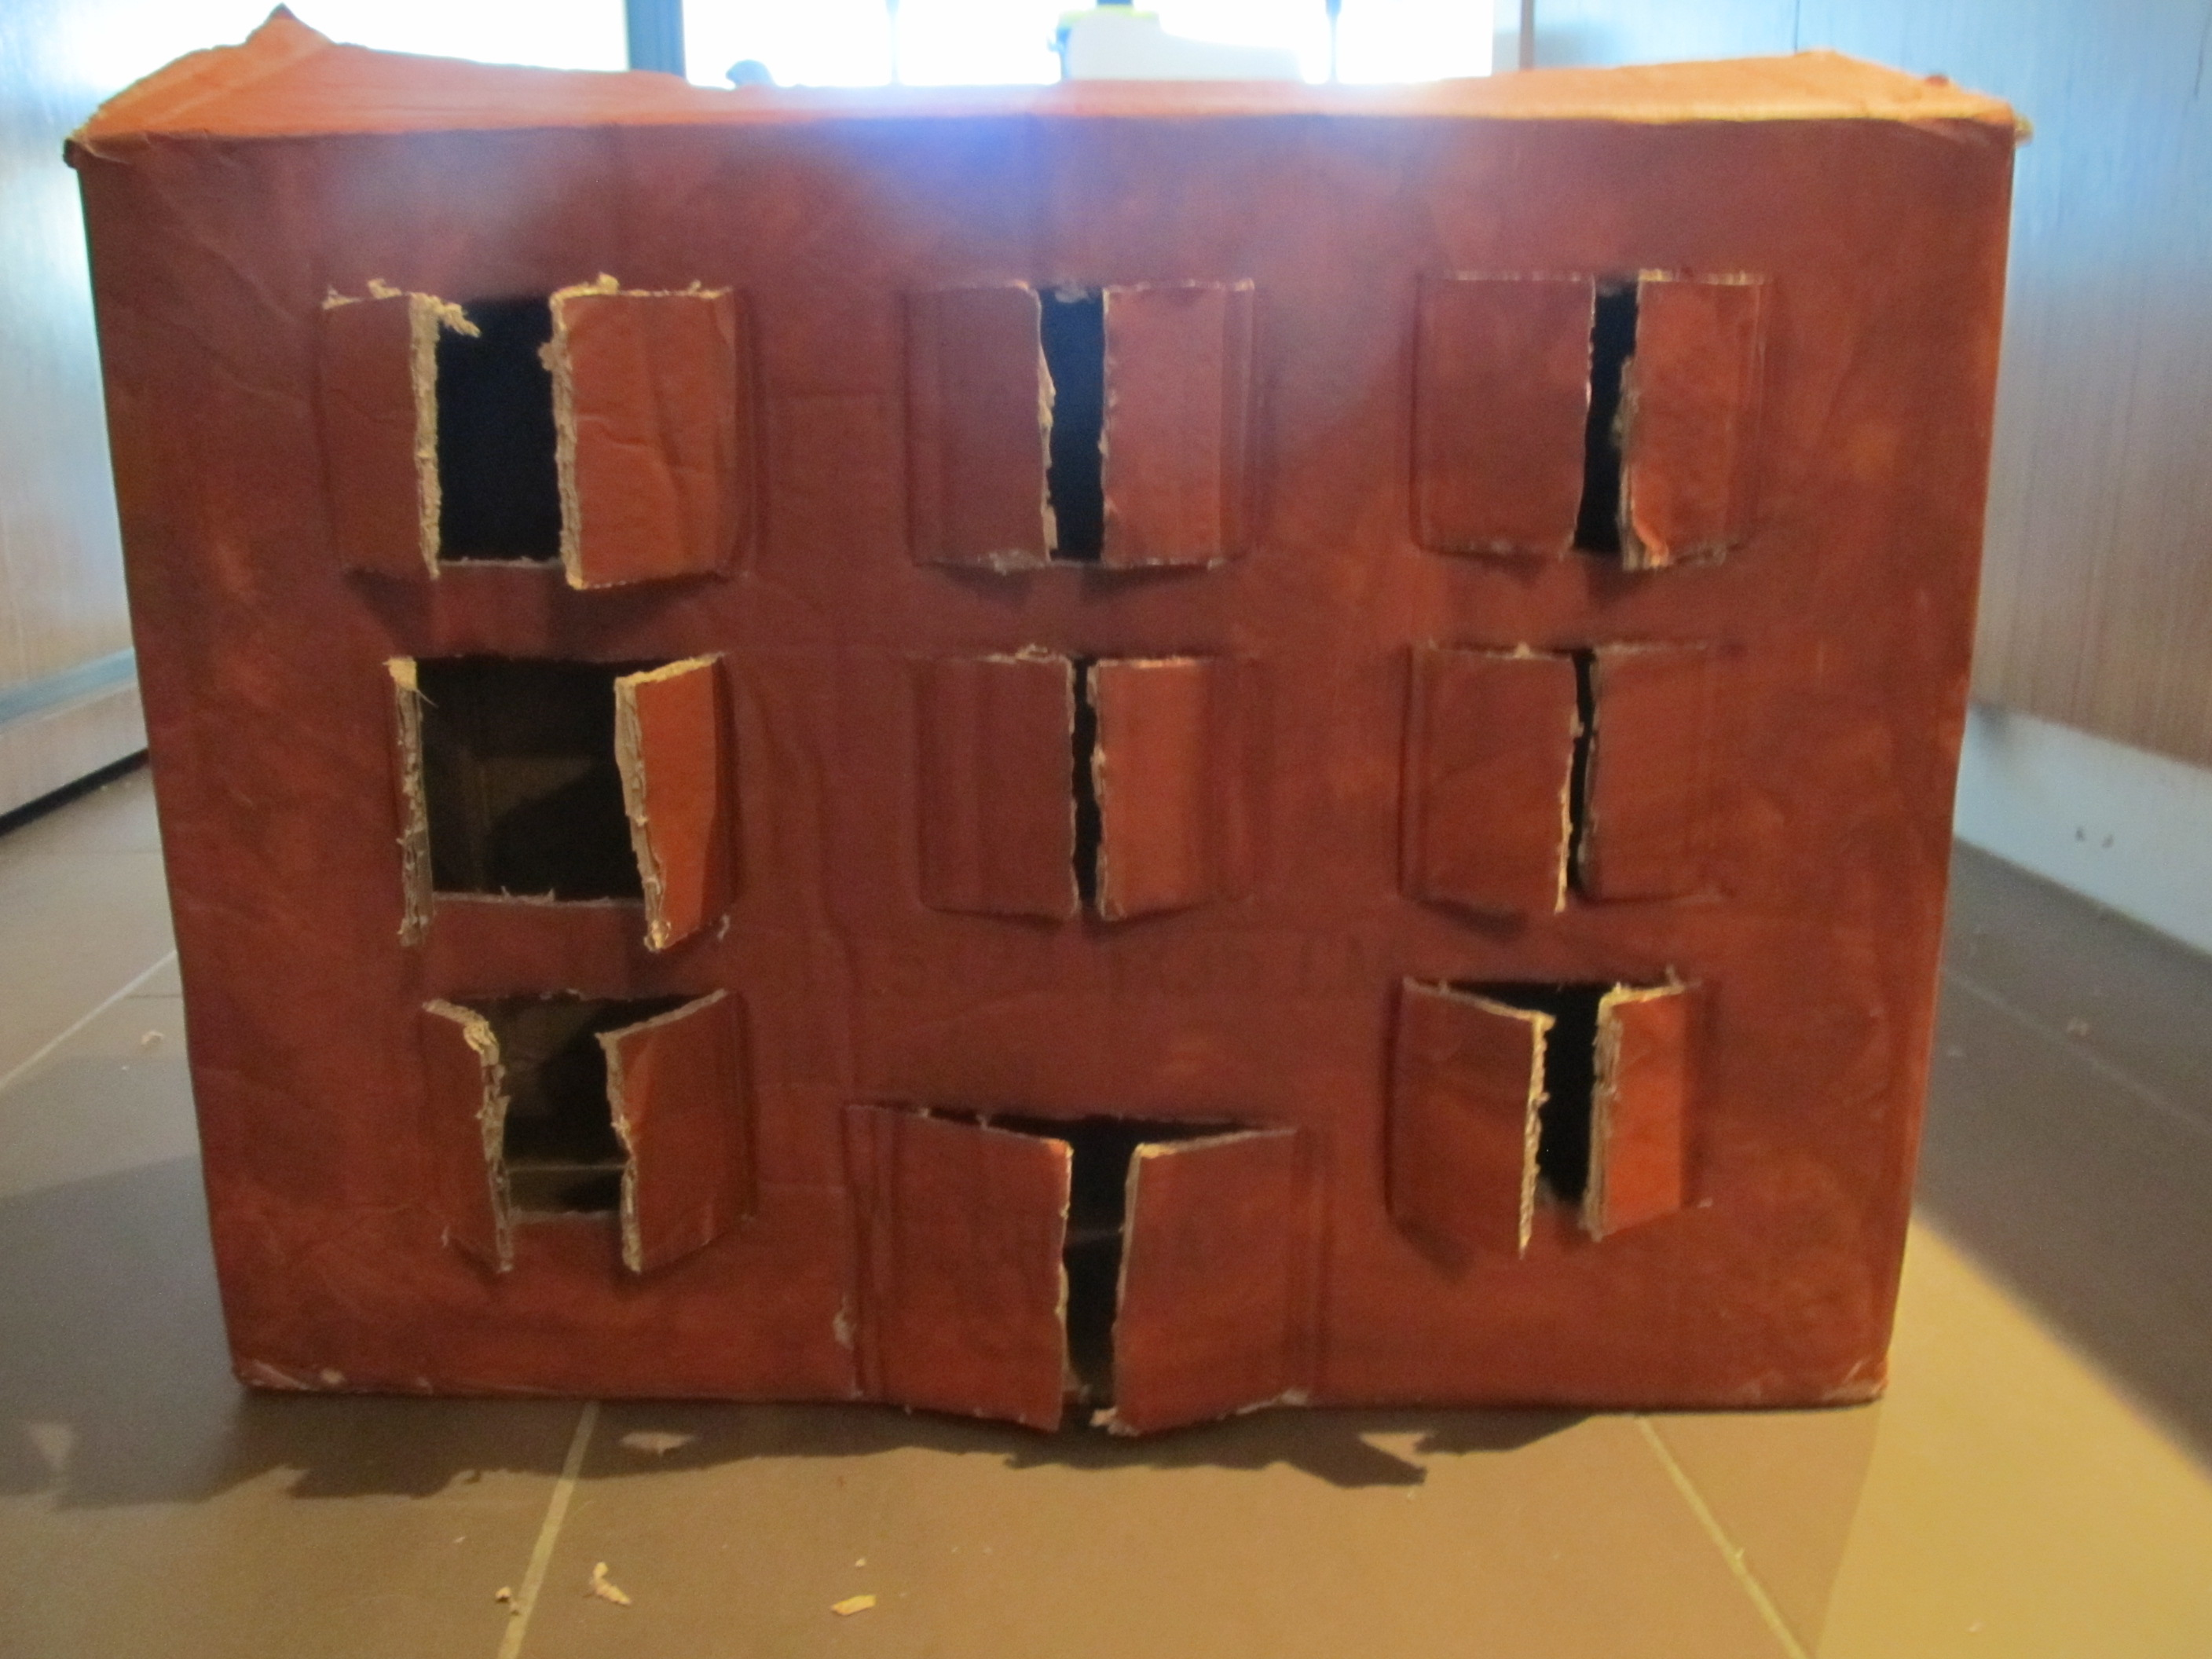 Cardboard Box Use #2,490 (A Burning Building)